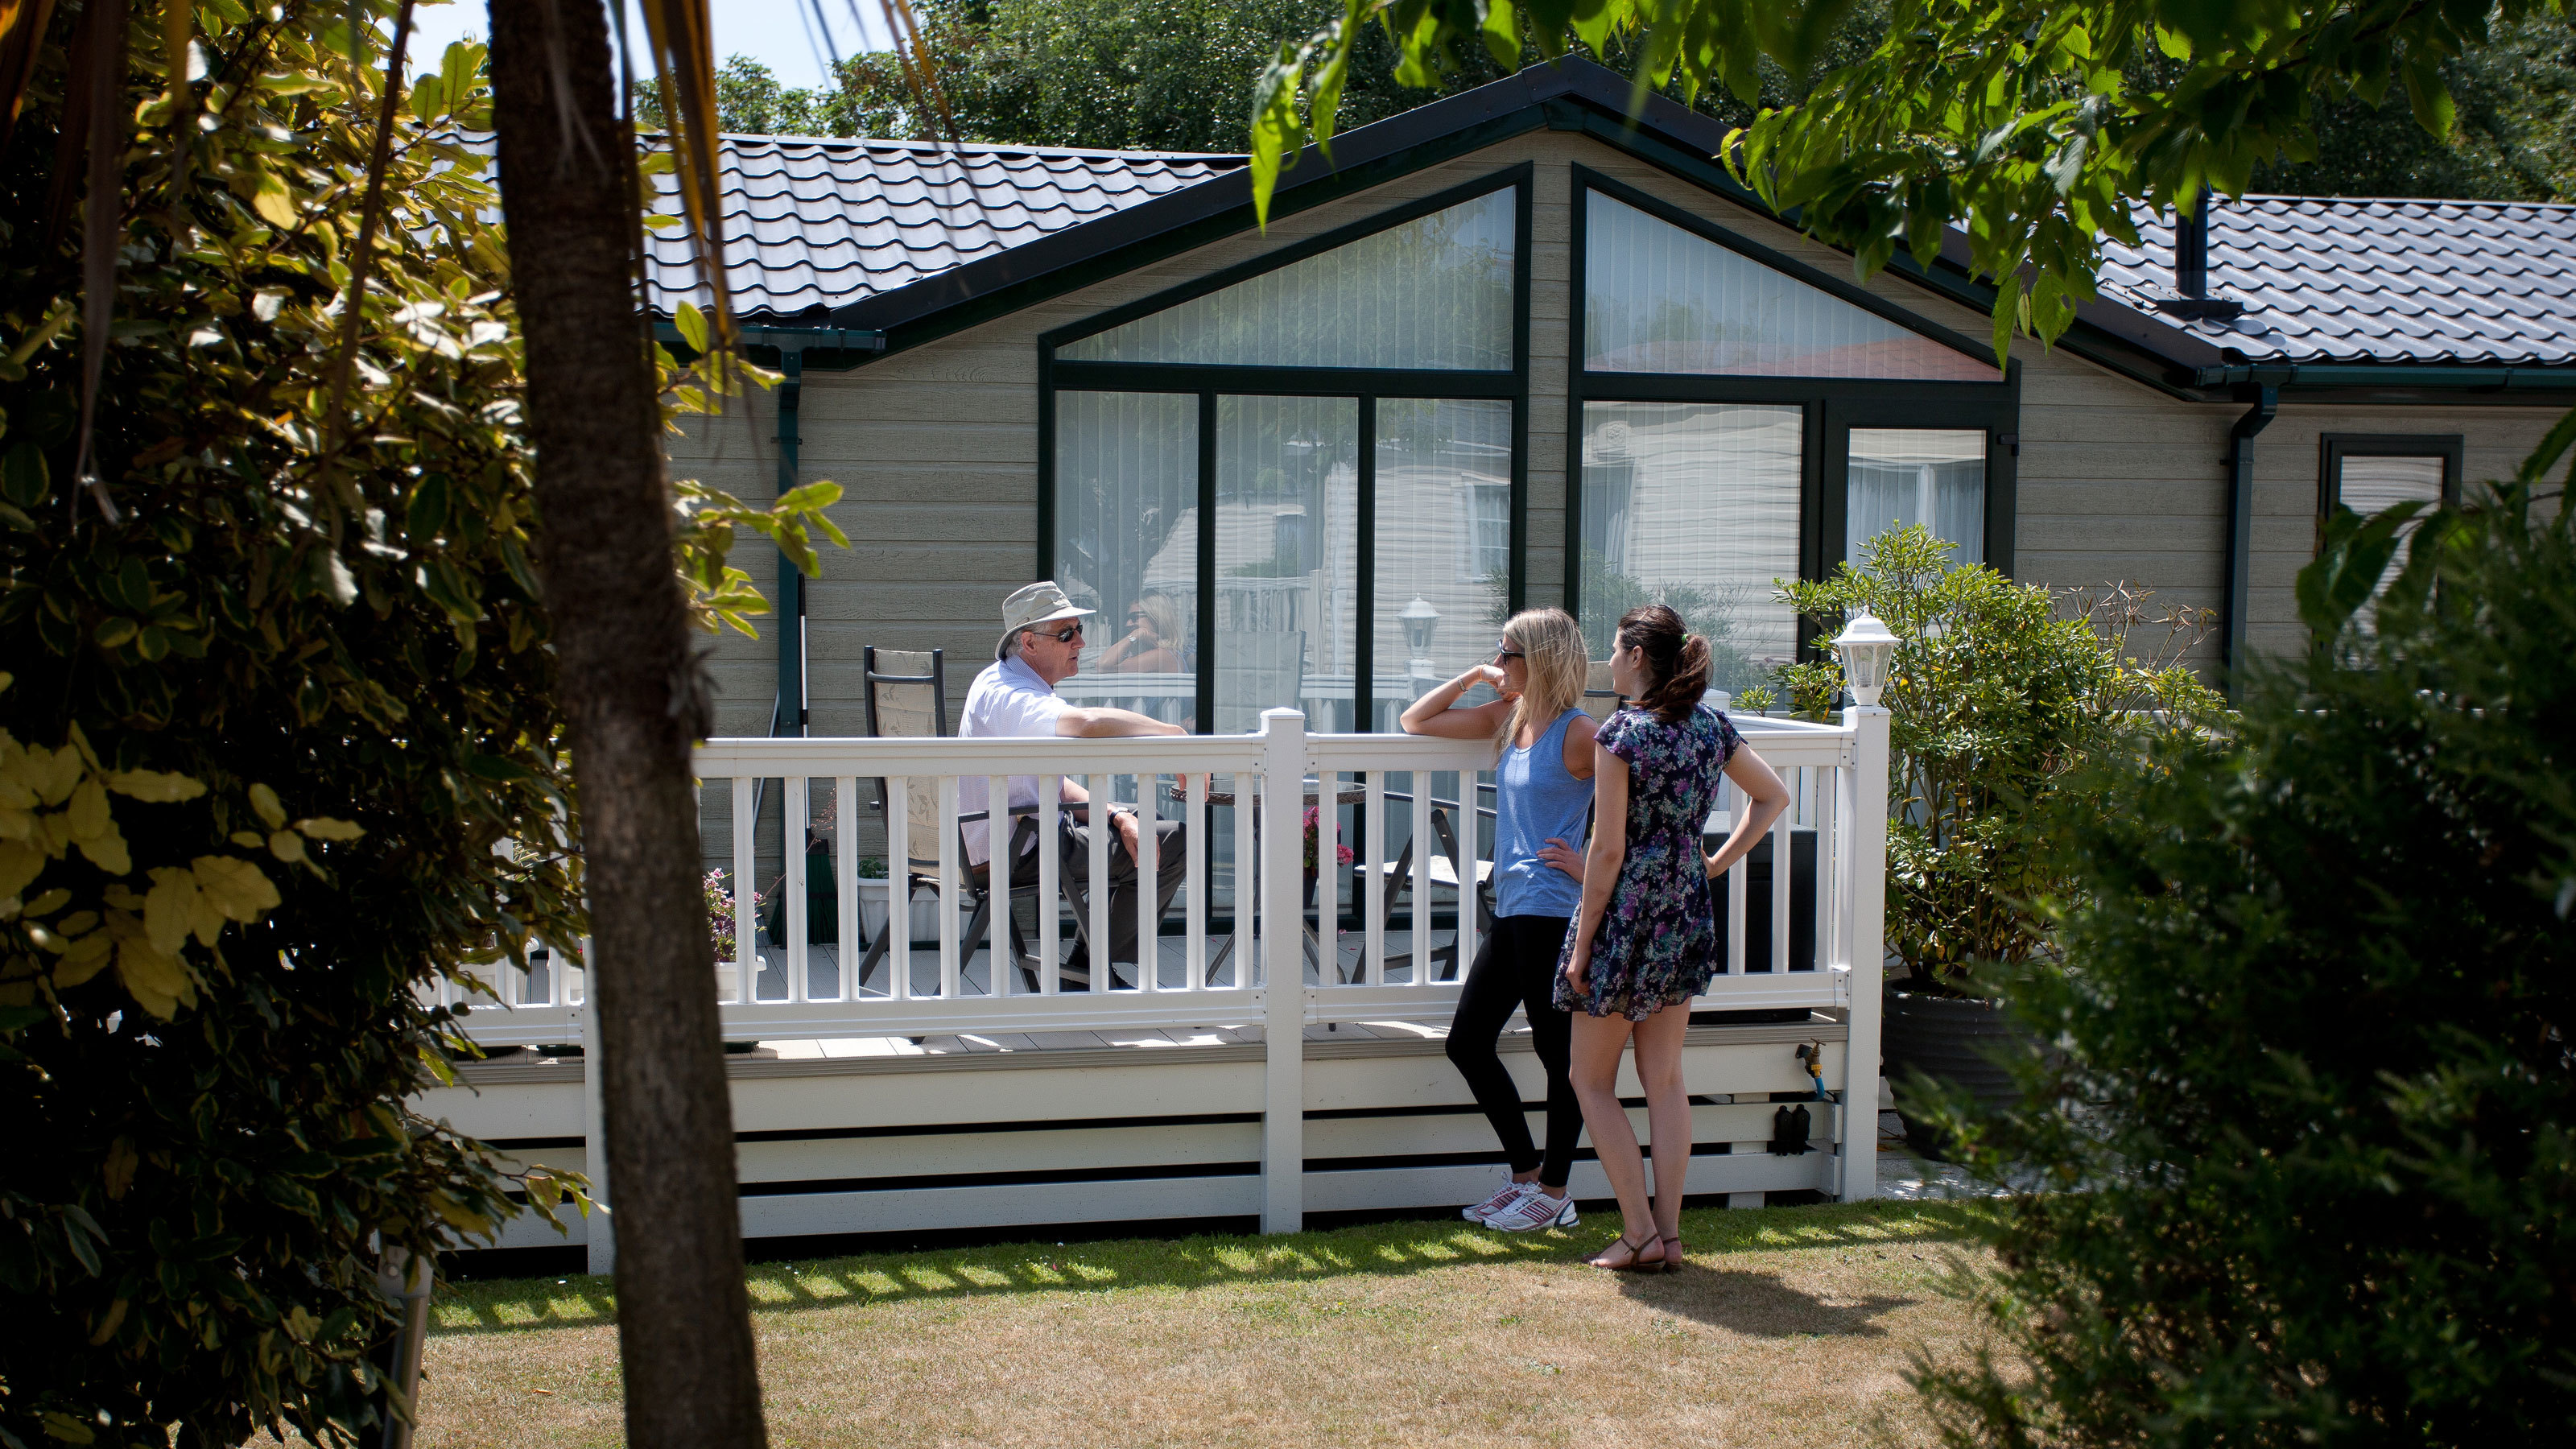 Owners Chatting Decking Safely Distanced